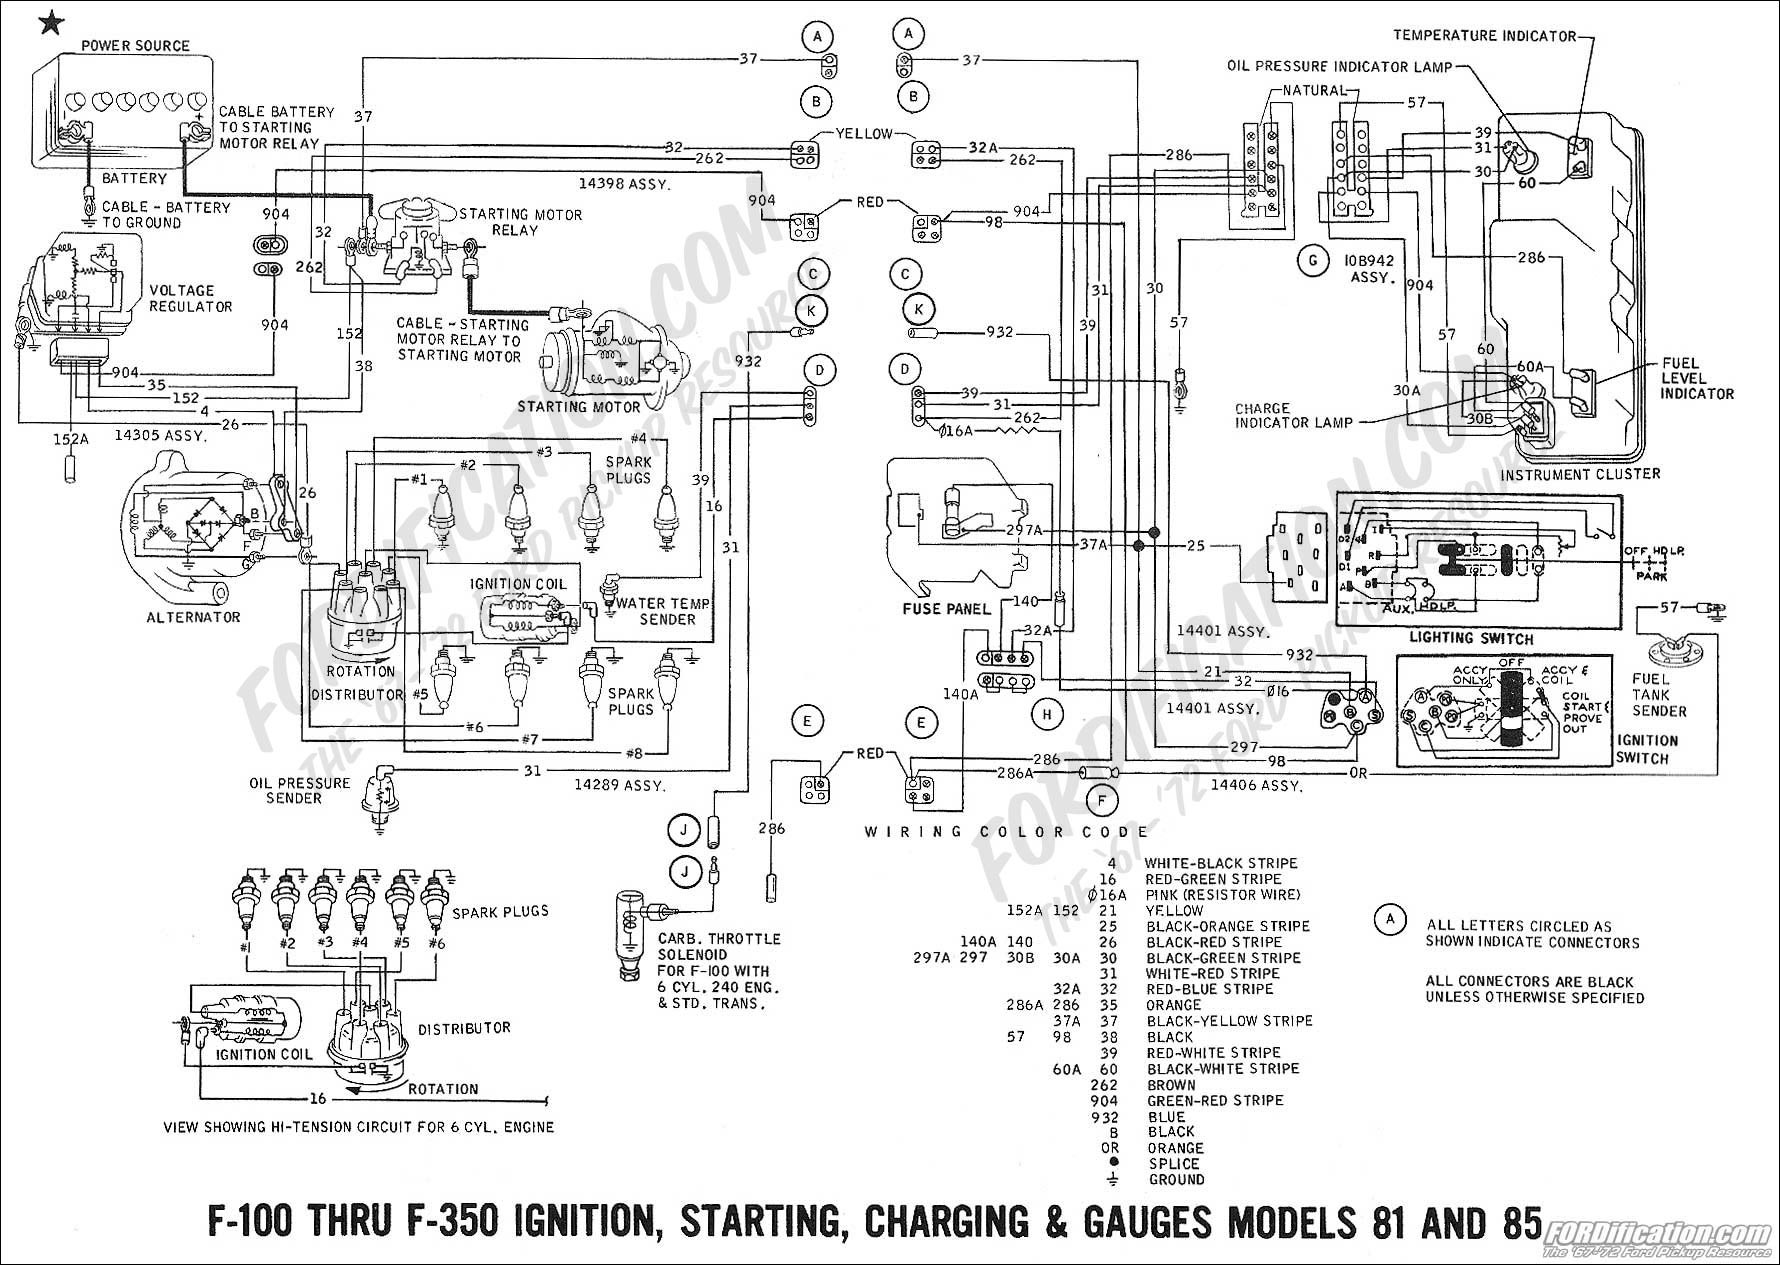 hight resolution of 1970 ford truck fuel gauge wiring diagram wiring diagram database 1963 ford fuel gauge wiring